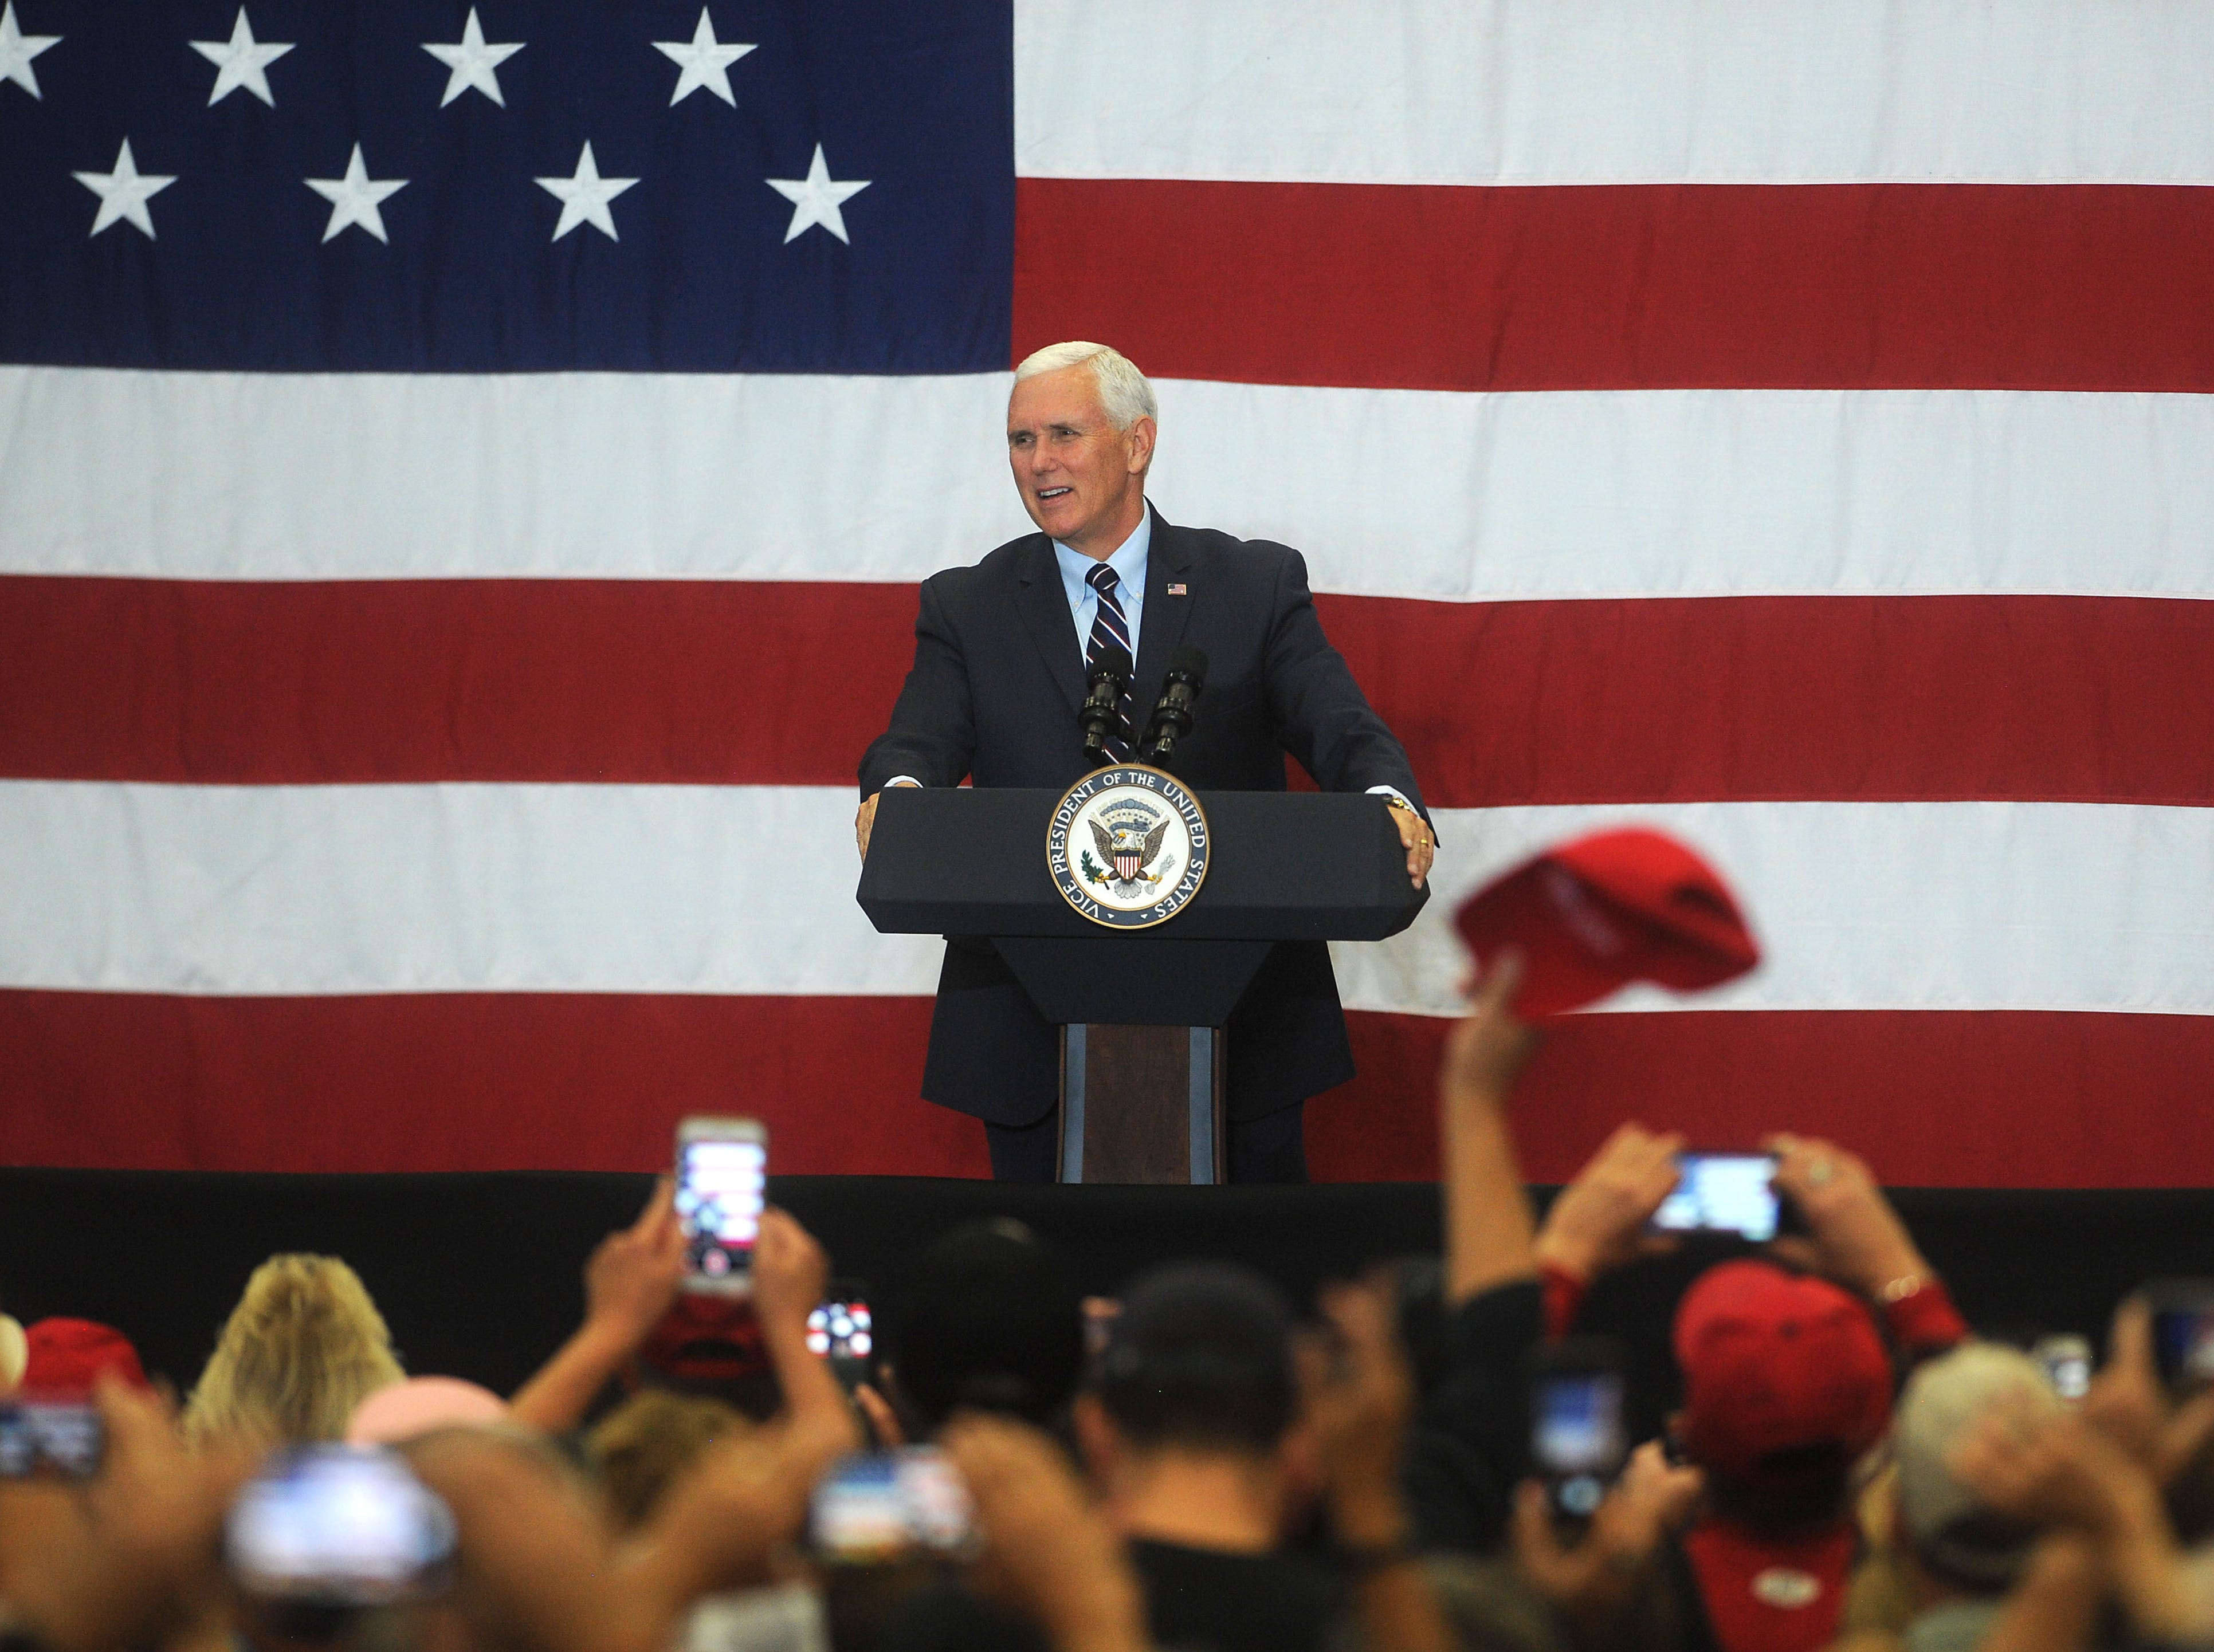 Vice President Mike Pence speaks at the Carson City Airport on Oct. 27, 2018.